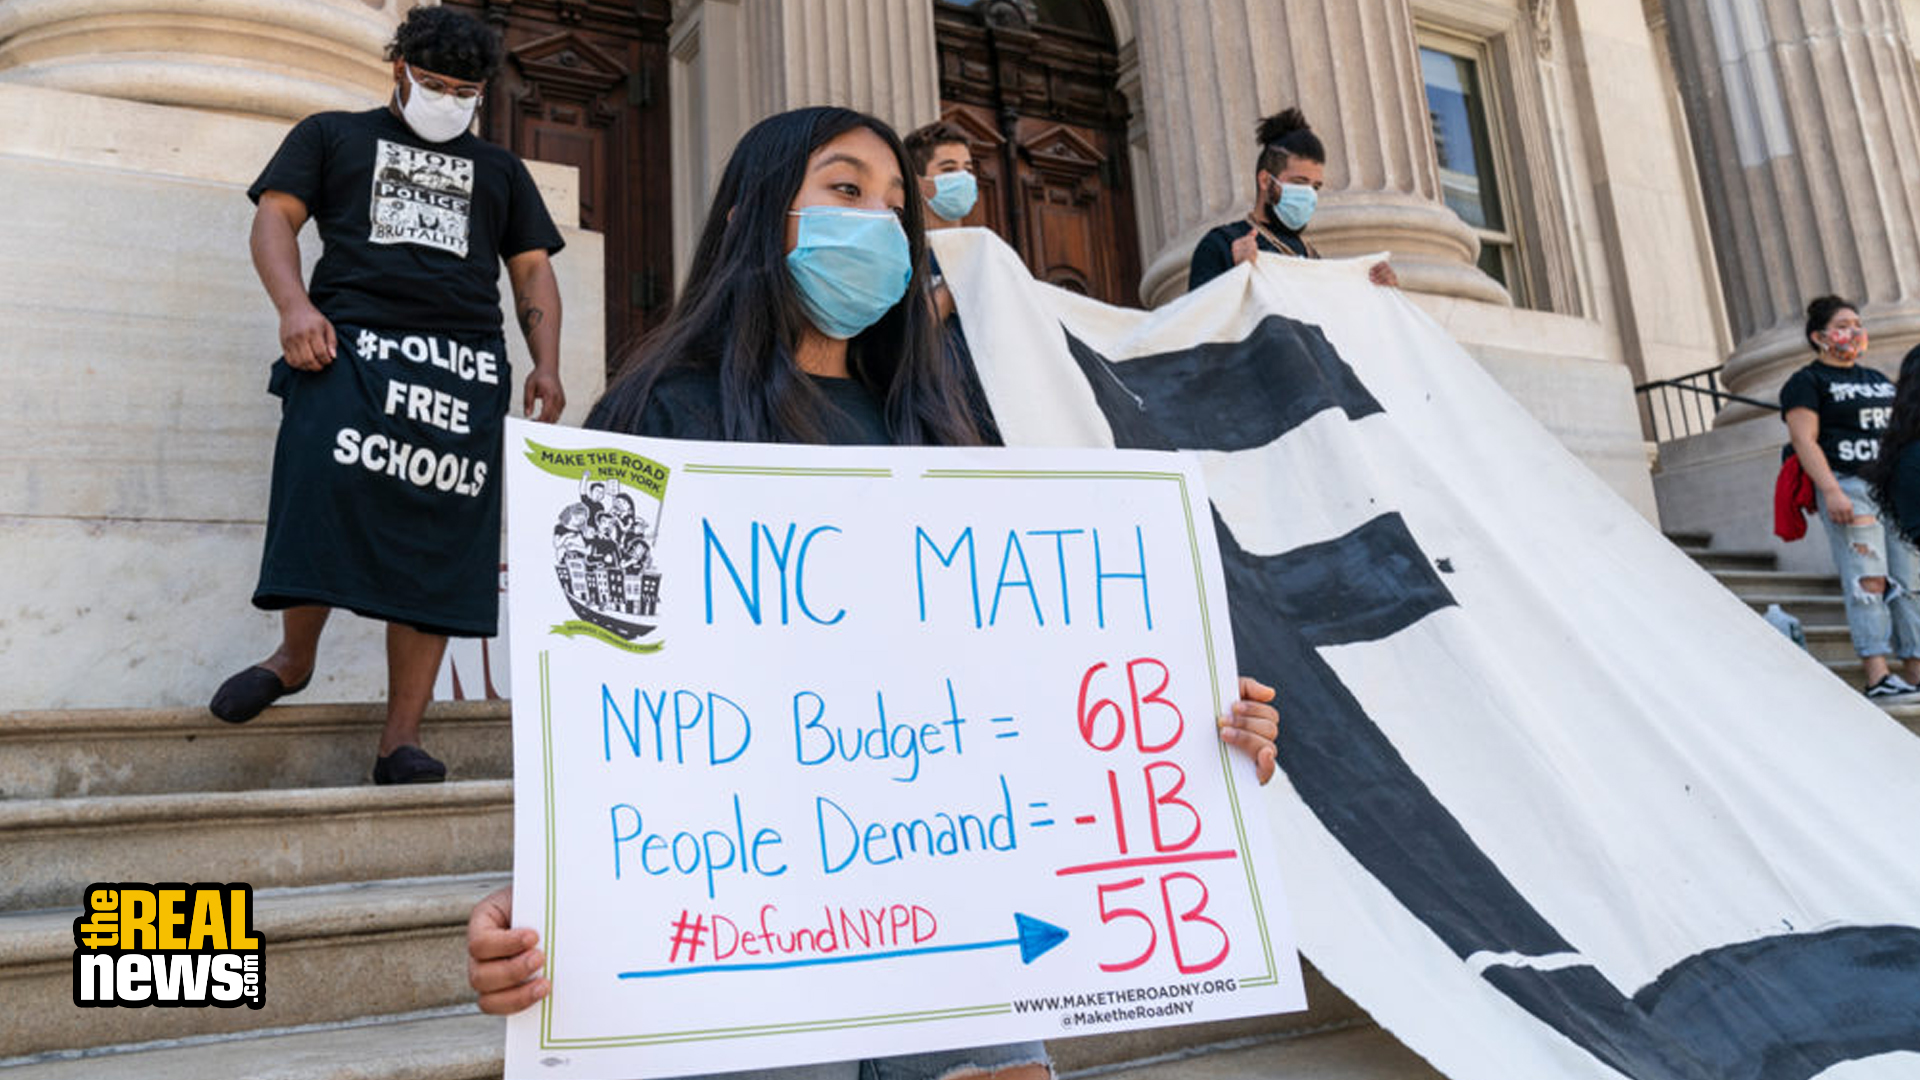 Who Controls The Money When We Defund Police?